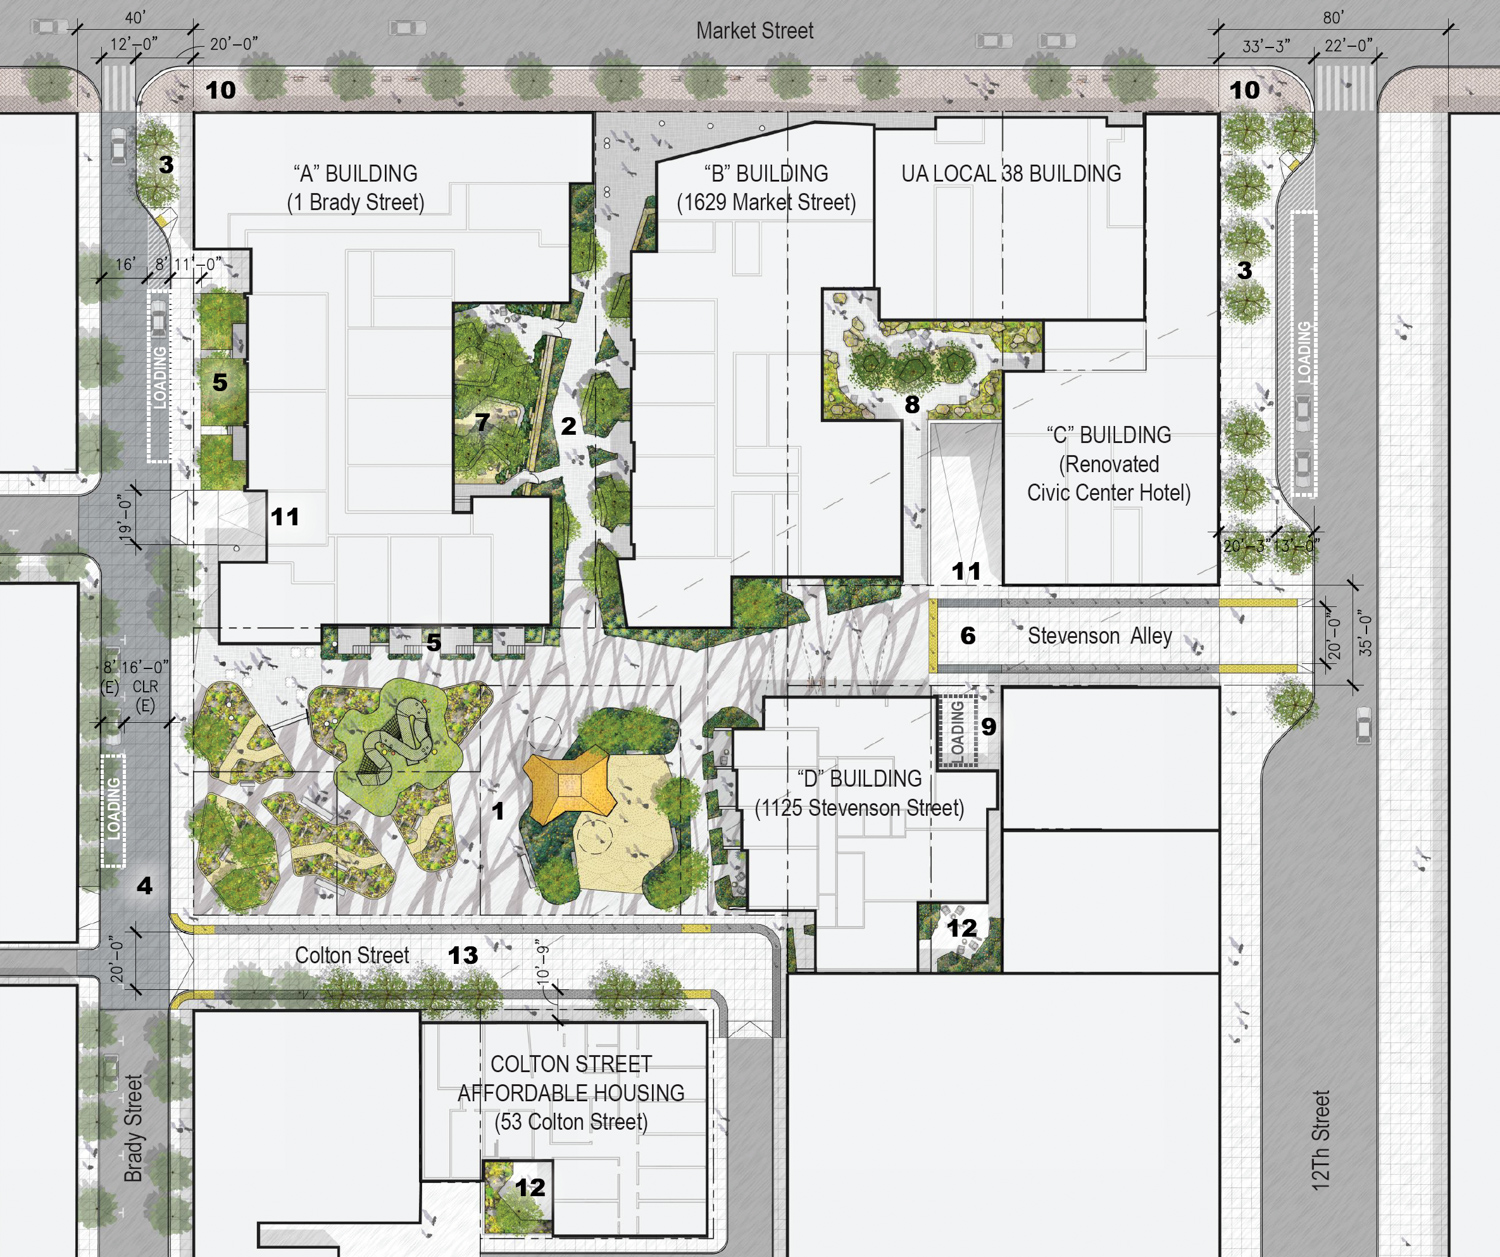 1629 Market Street development with all five buildings, design by Kennerly Architects